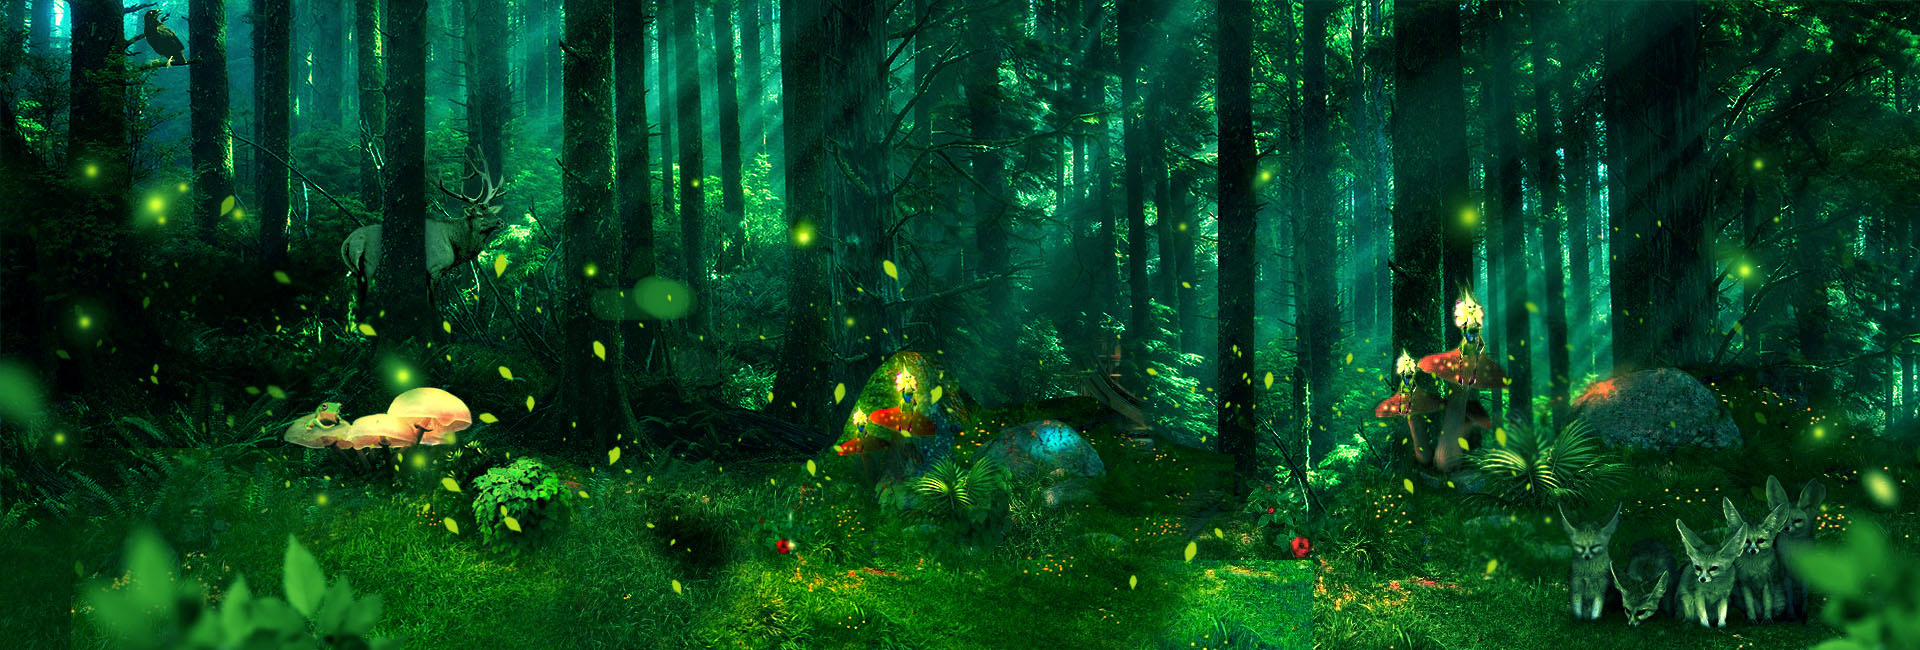 Fantasy Forest Green Background Dream Green Forest